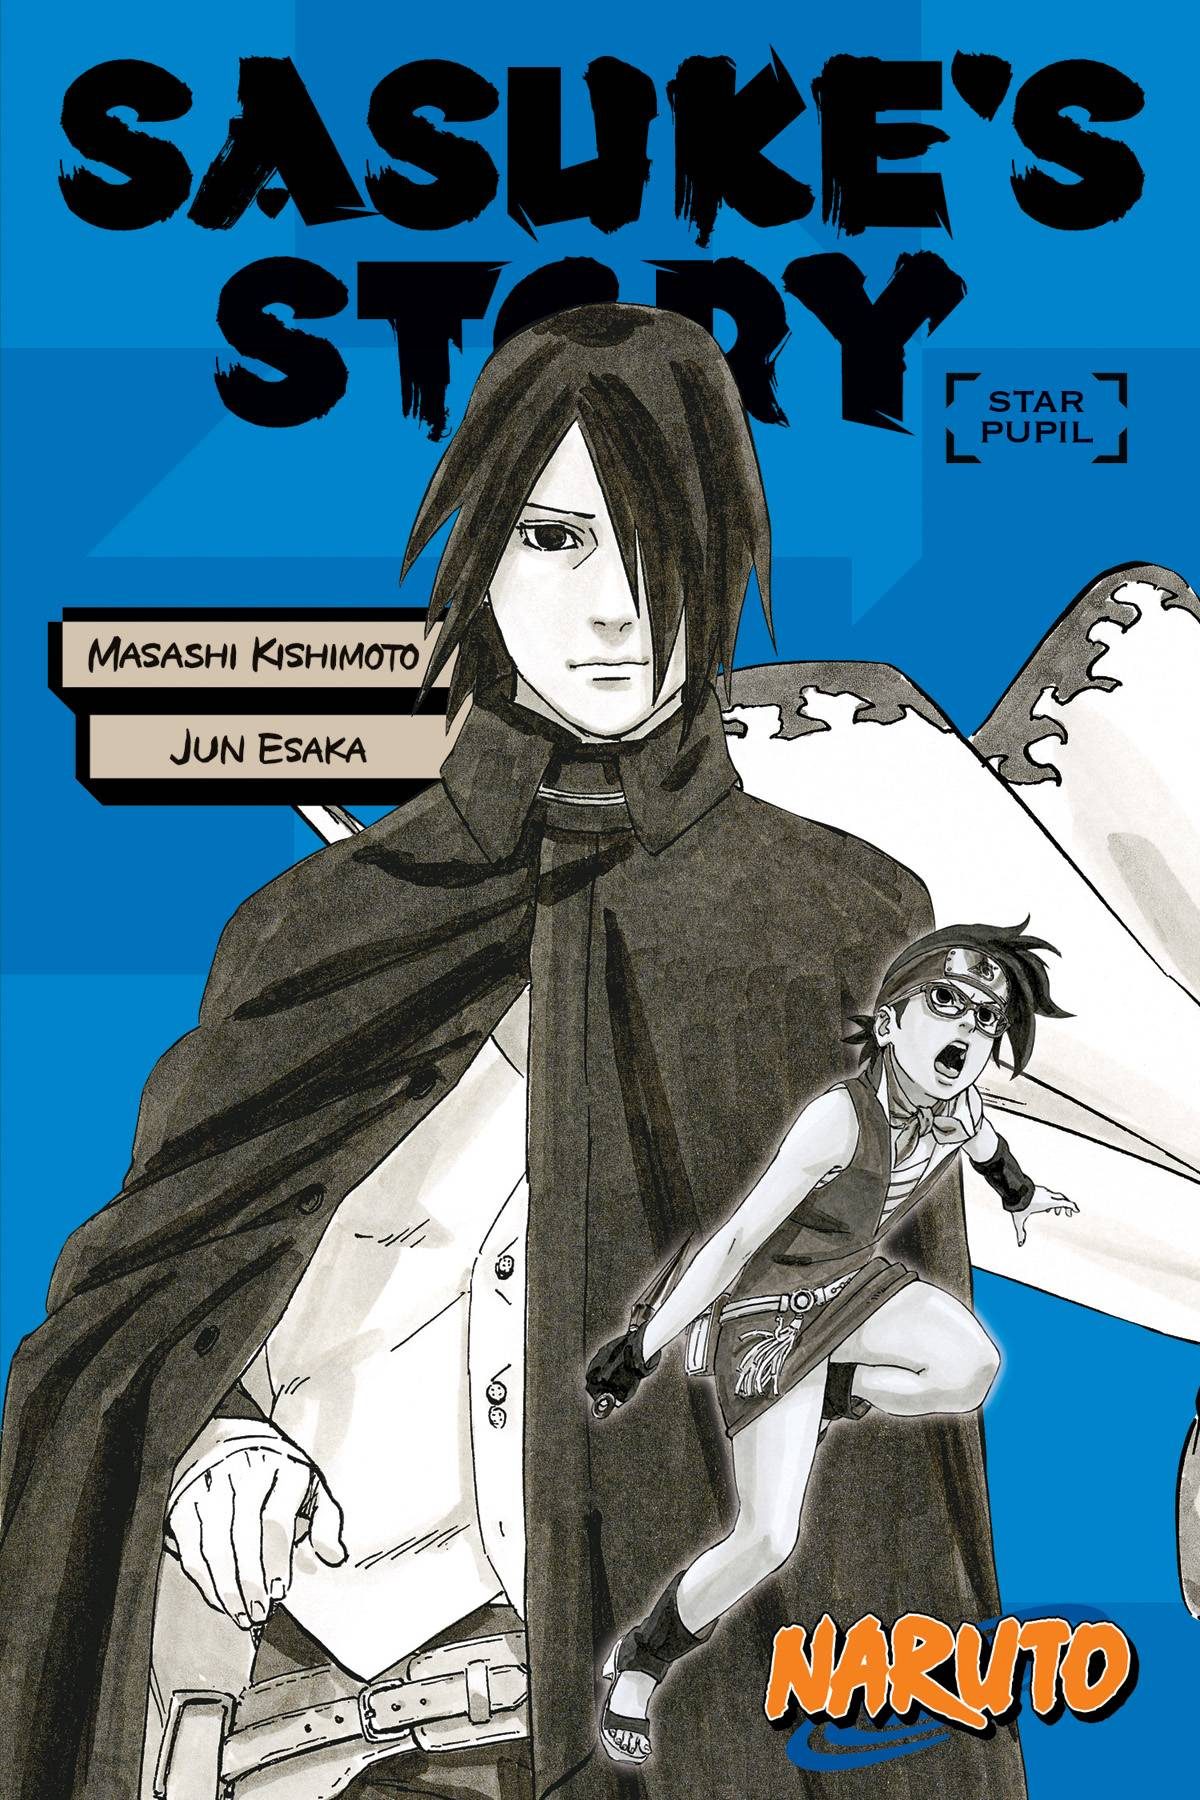 NARUTO SASUKE STORY SC NOVEL STAR PUPIL